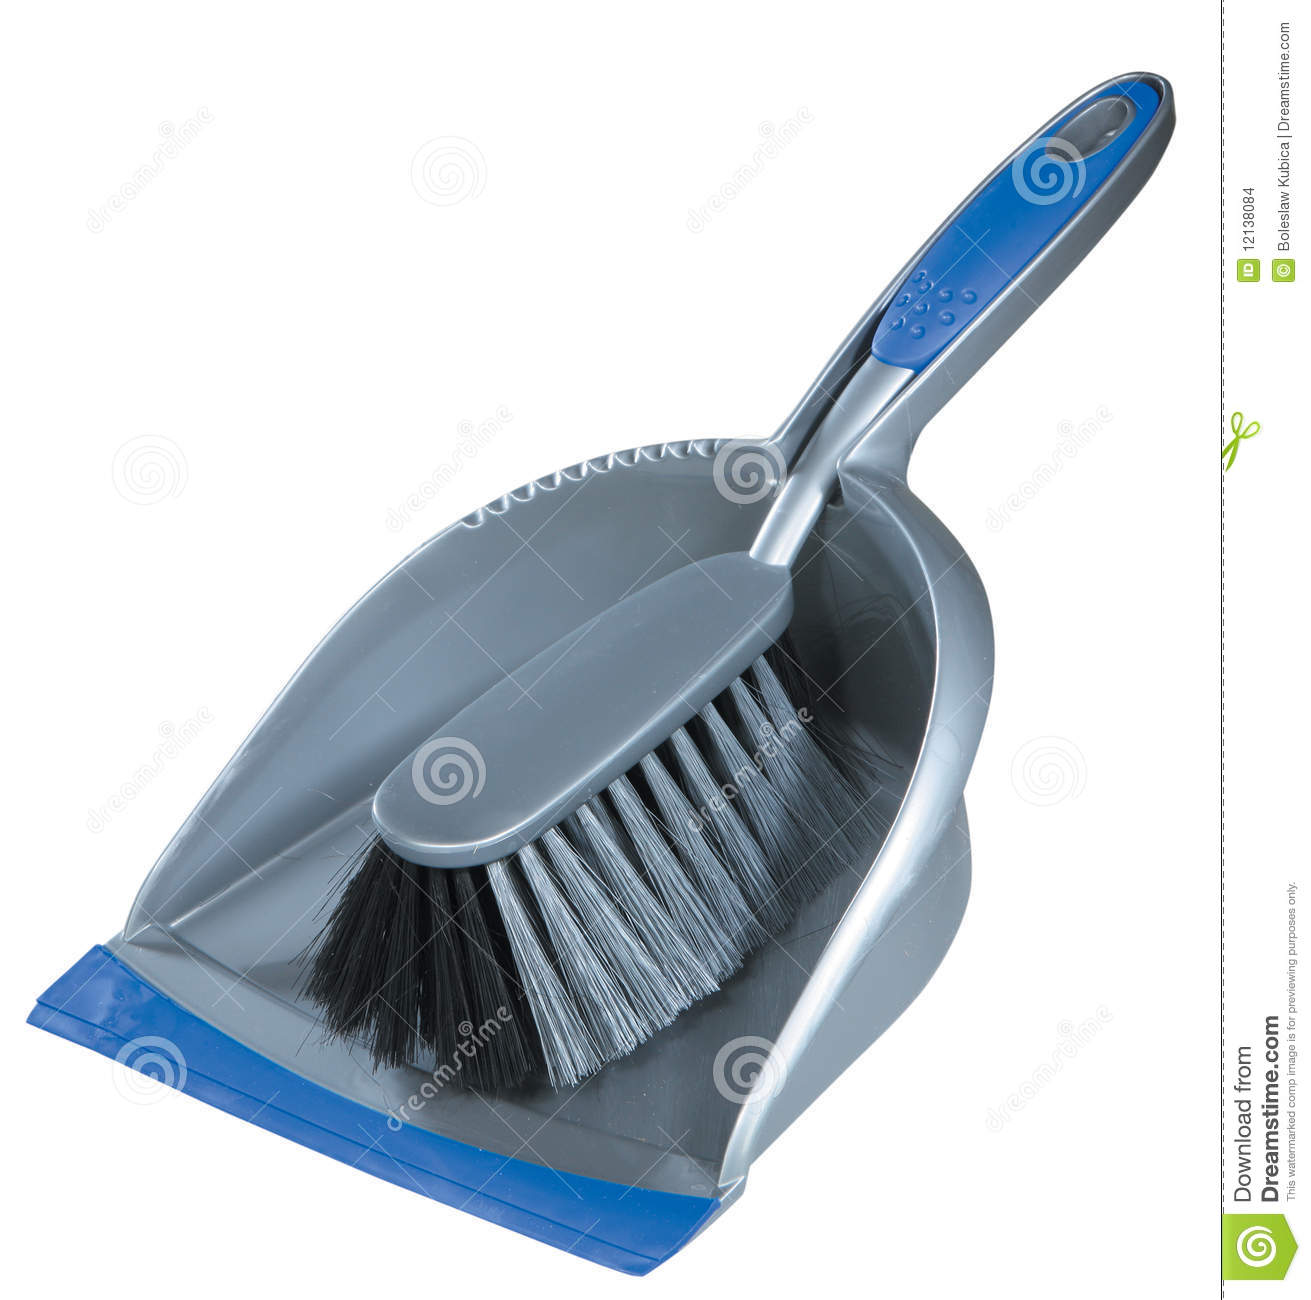 Small broom and dustpan stock photo  Image of blue, plastic